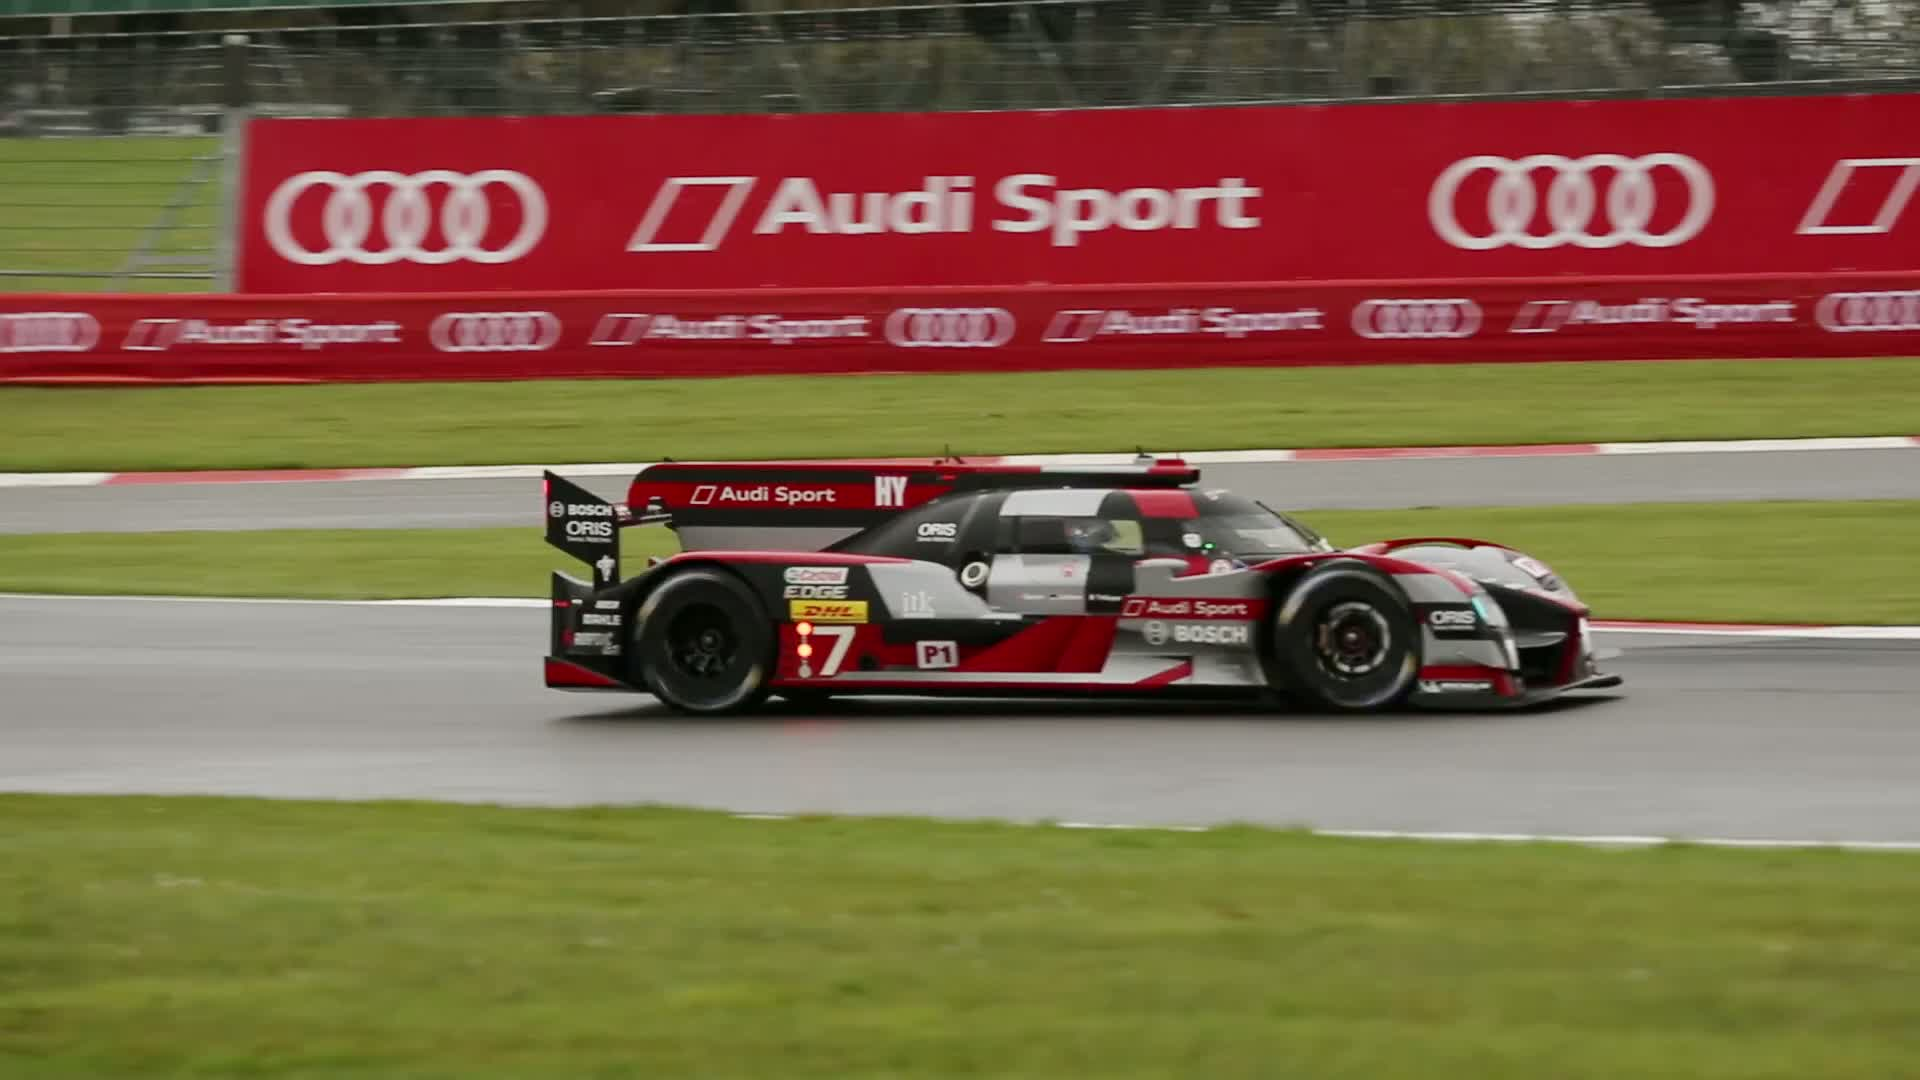 60 Seconds of Audi Sport 6/2016 – WEC Silverstone, Pole Position